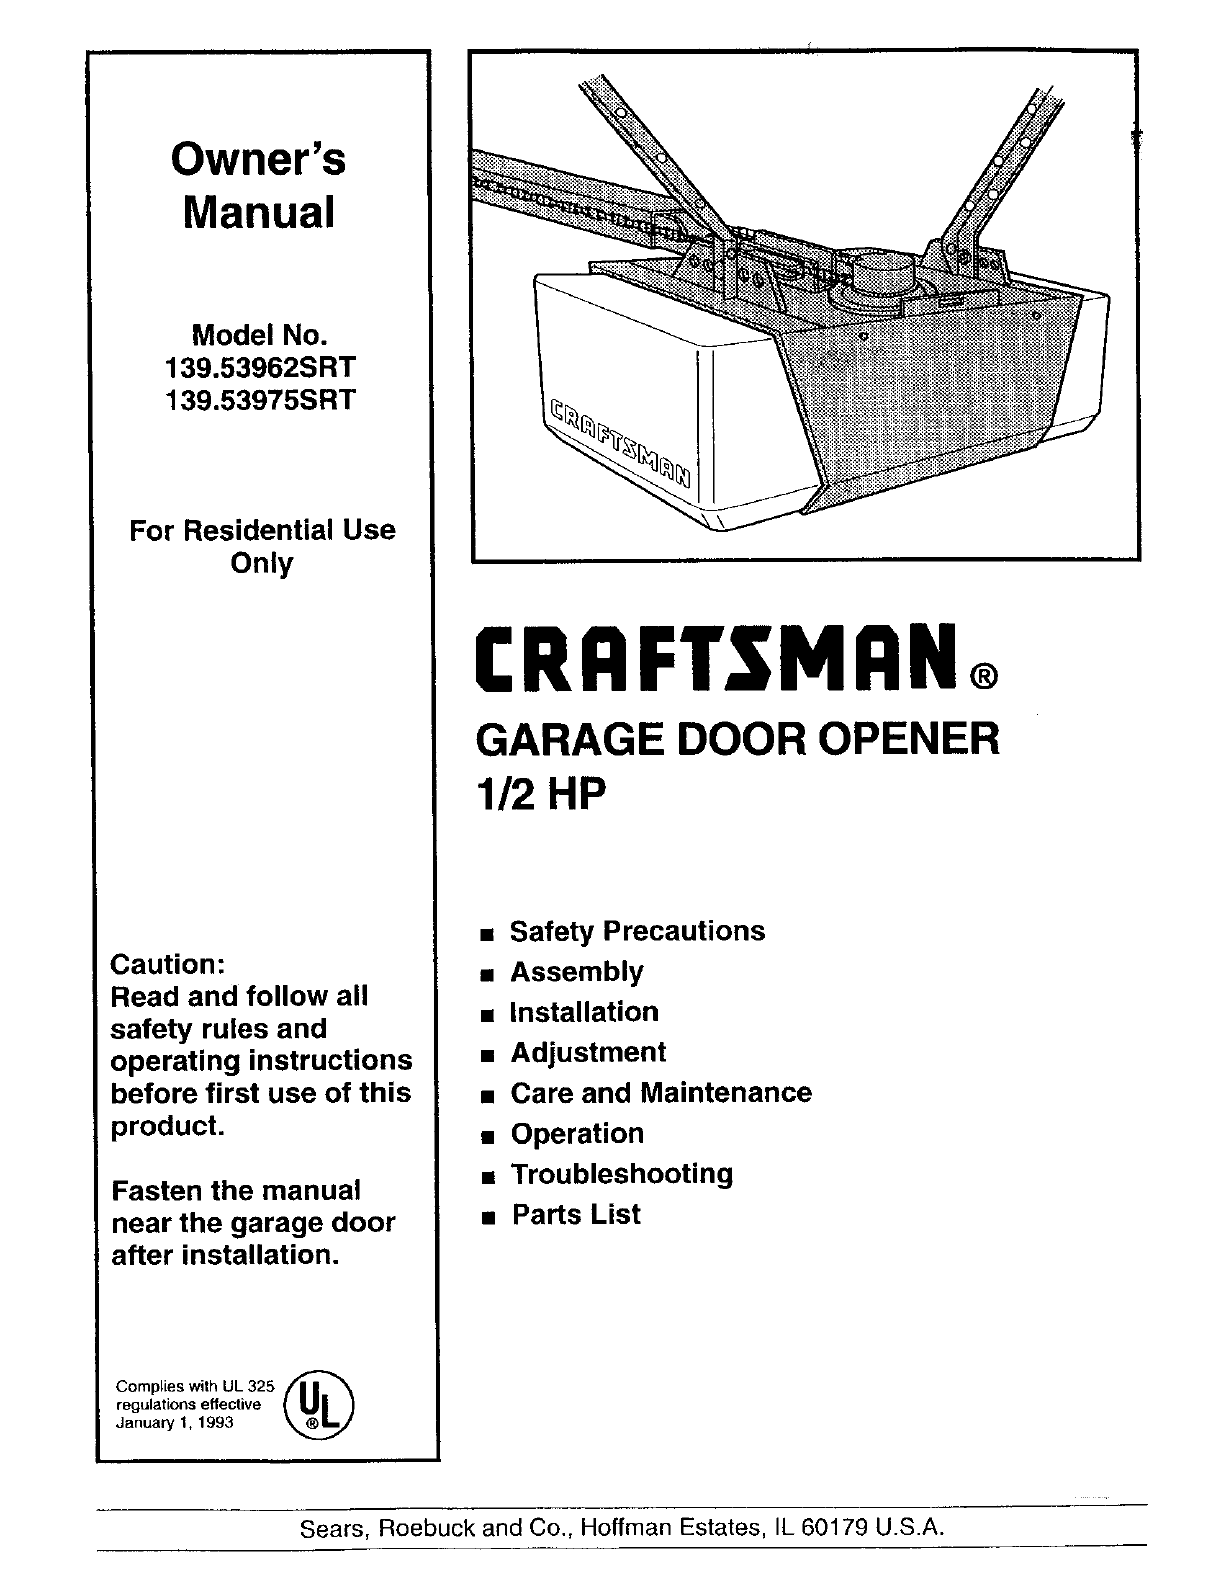 Craftsman Garage Door Opener Parts Home Depot : craftsman, garage, opener, parts, depot, Foscam, Wiring, Diagram, Electrical